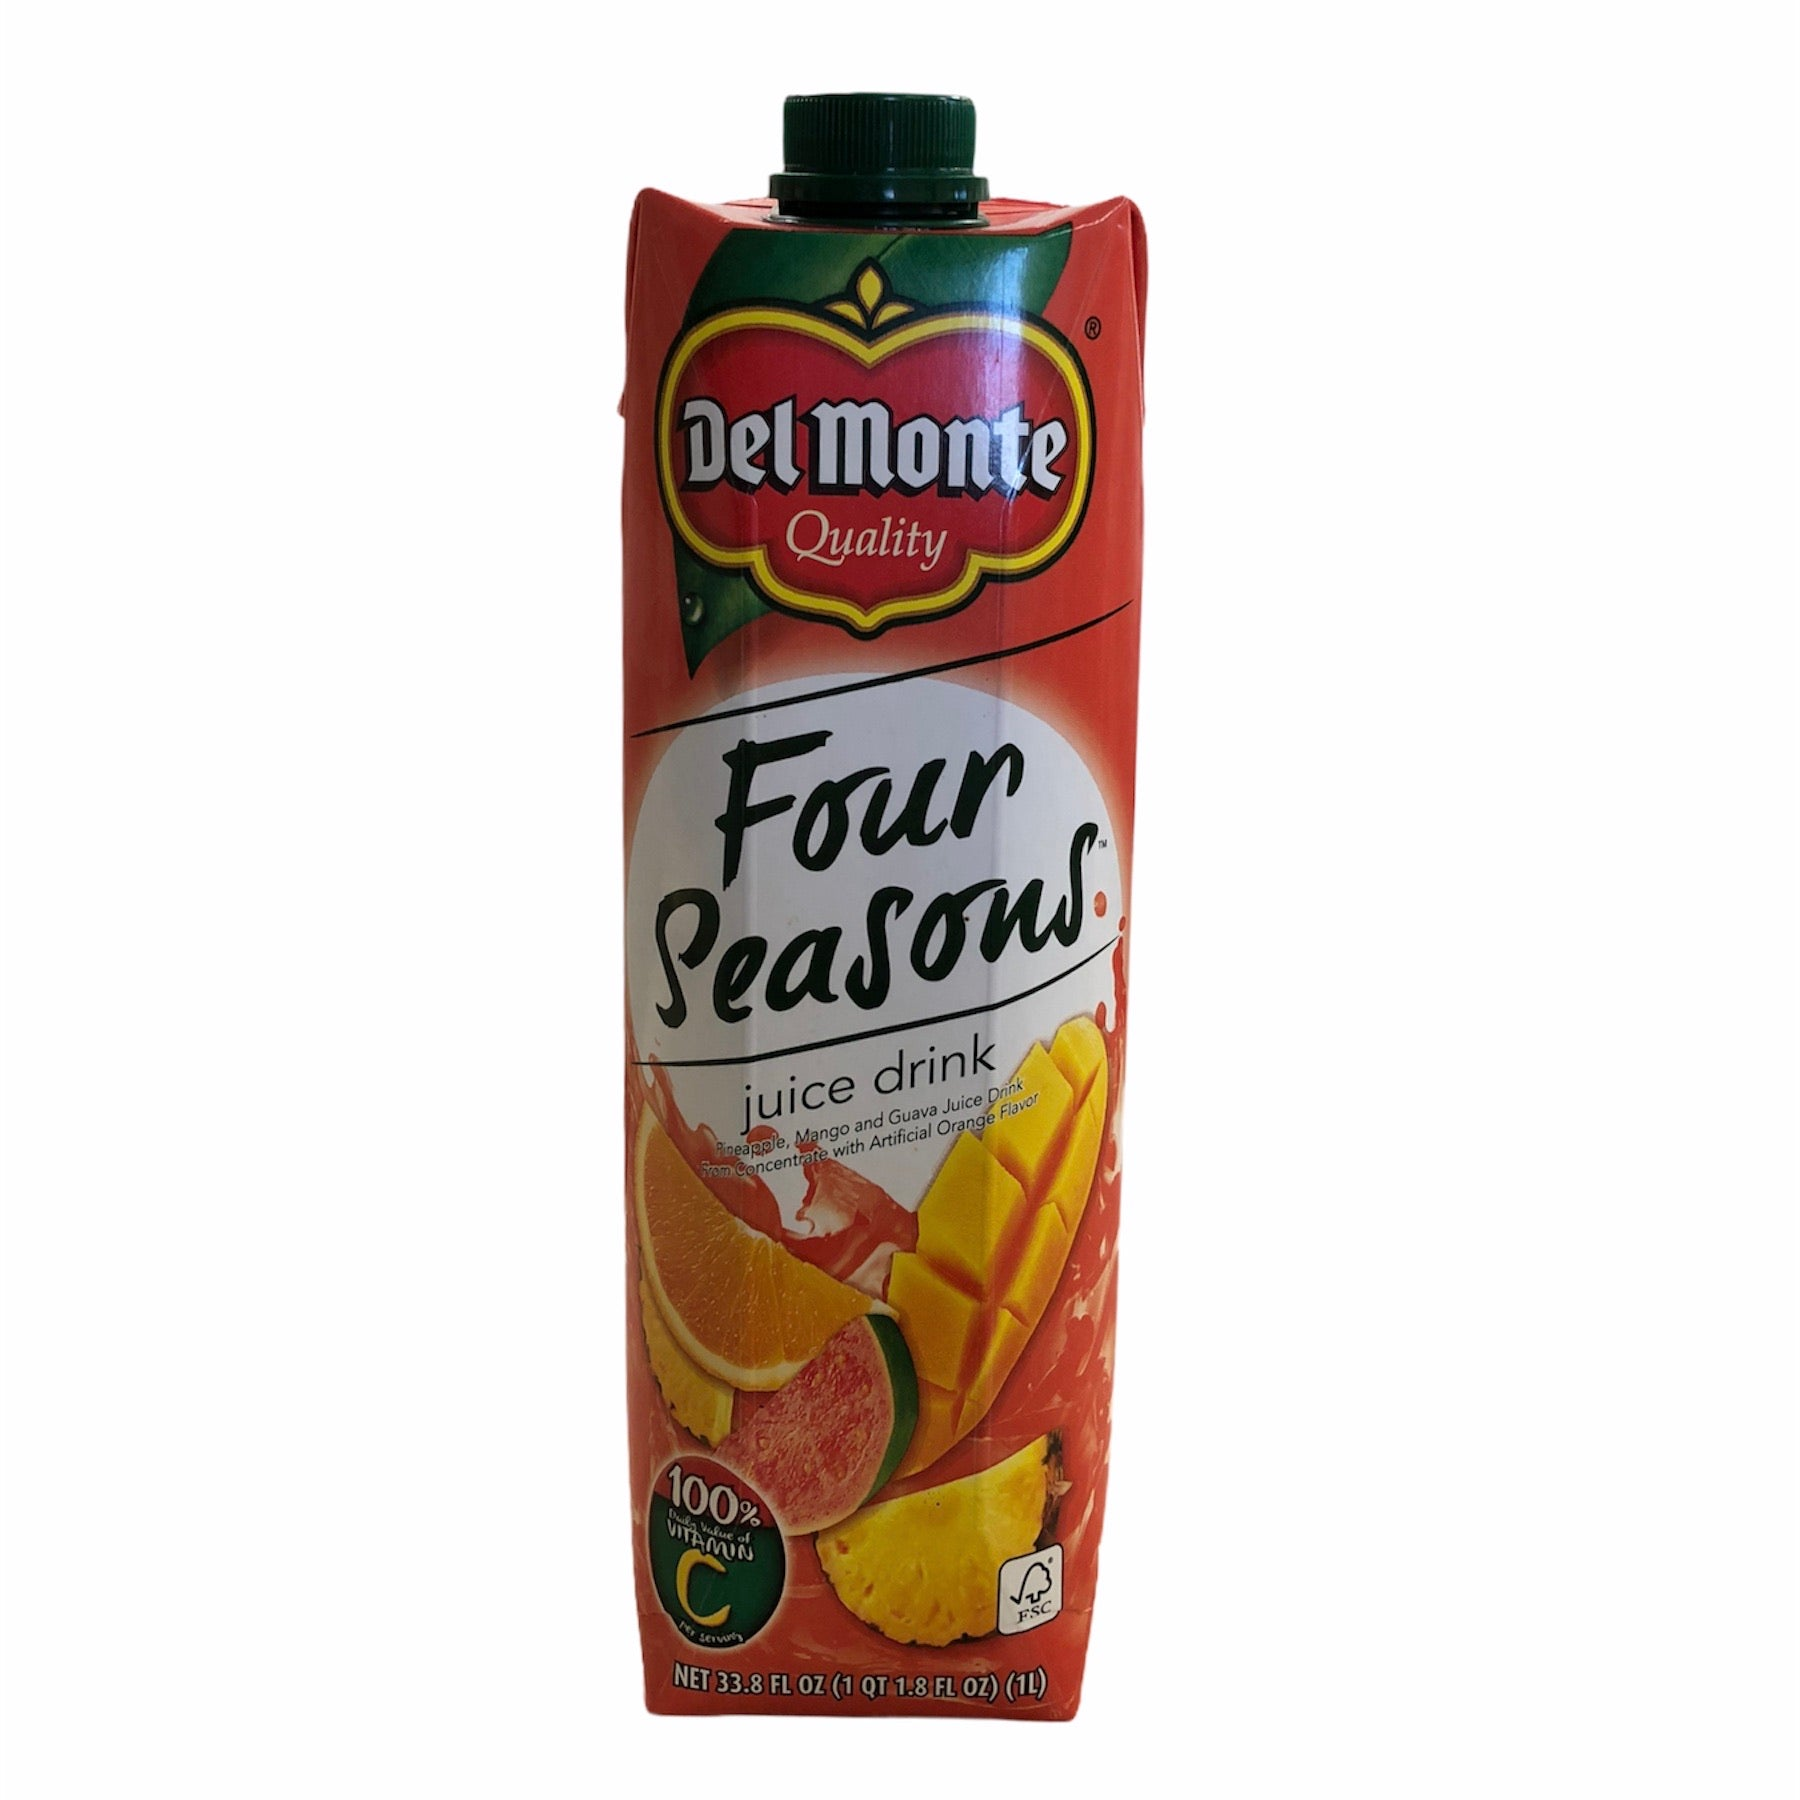 Del Monte - Four Seasons Juice Drink 1 L